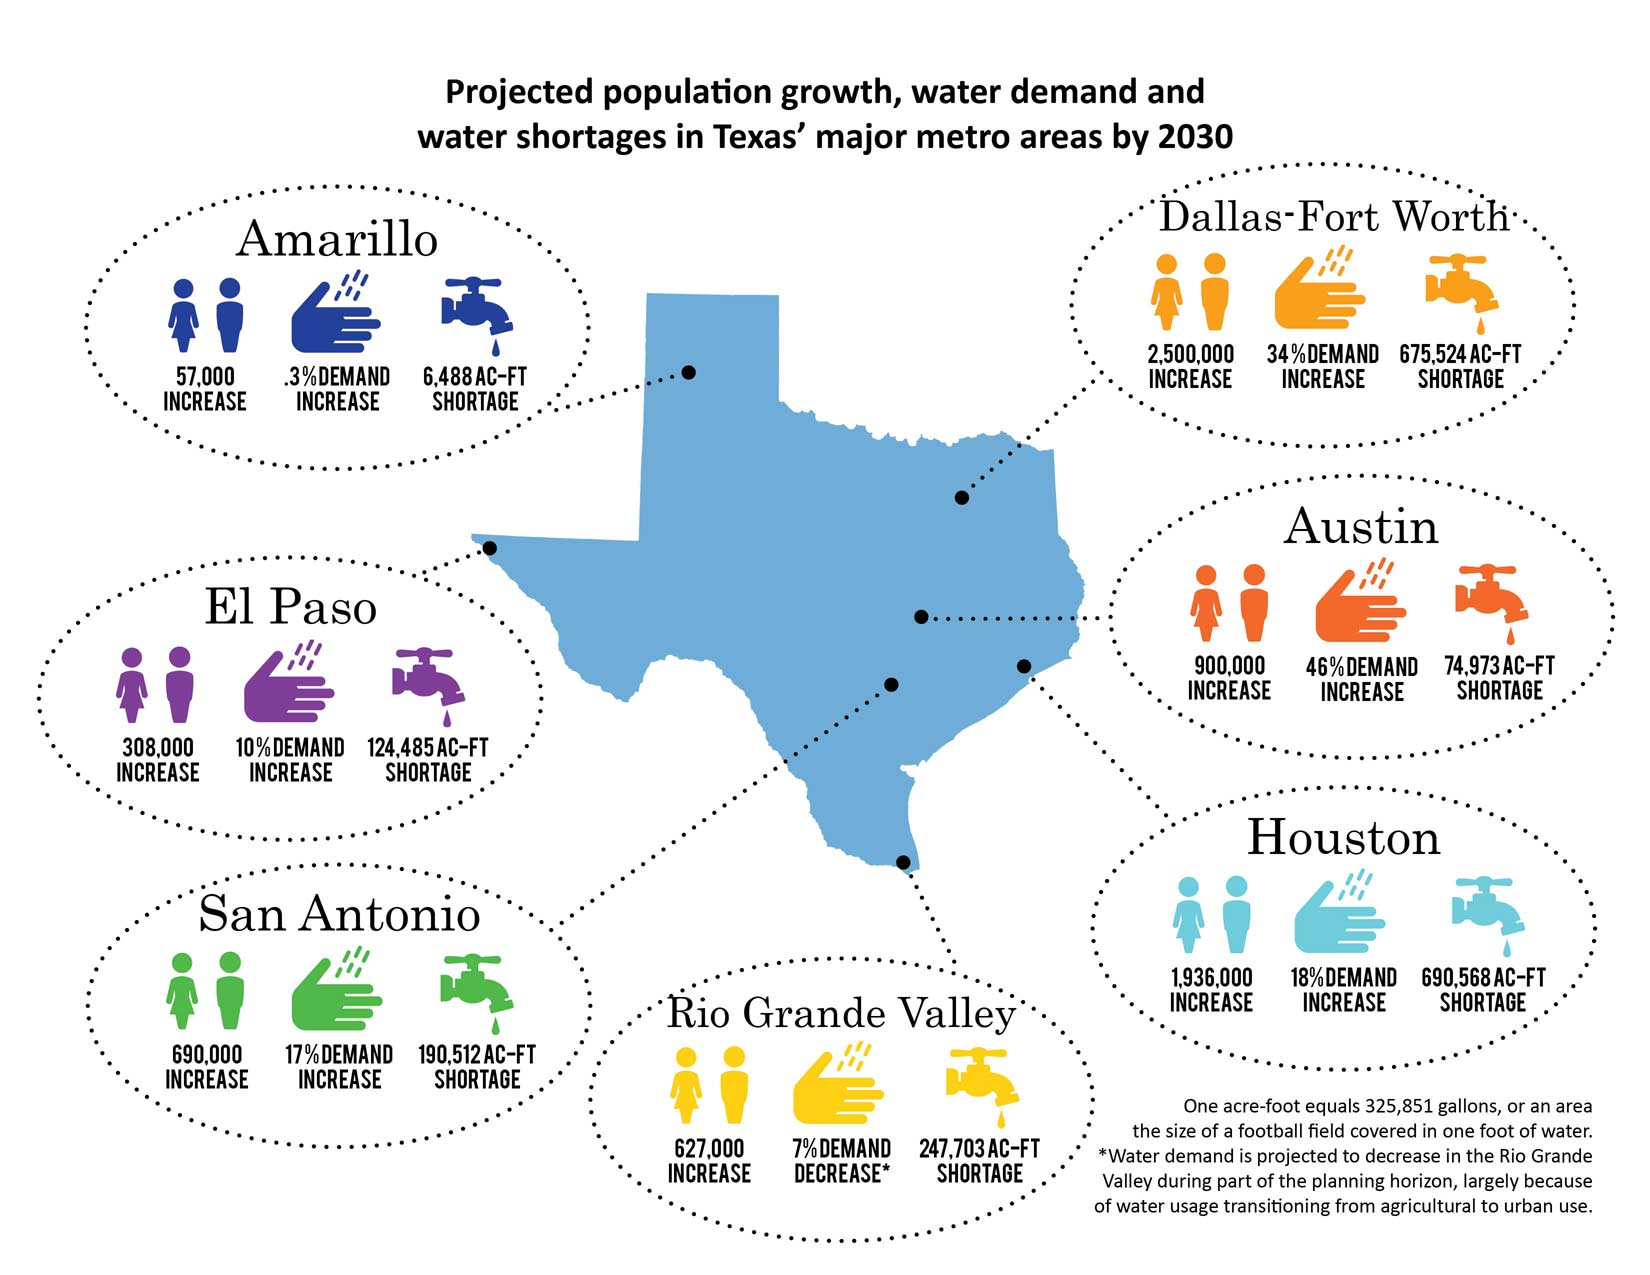 Projected population growth, water demand, and water shortages in Texas major metropolitan areas by 2030; Texas Water Development Board infographic.